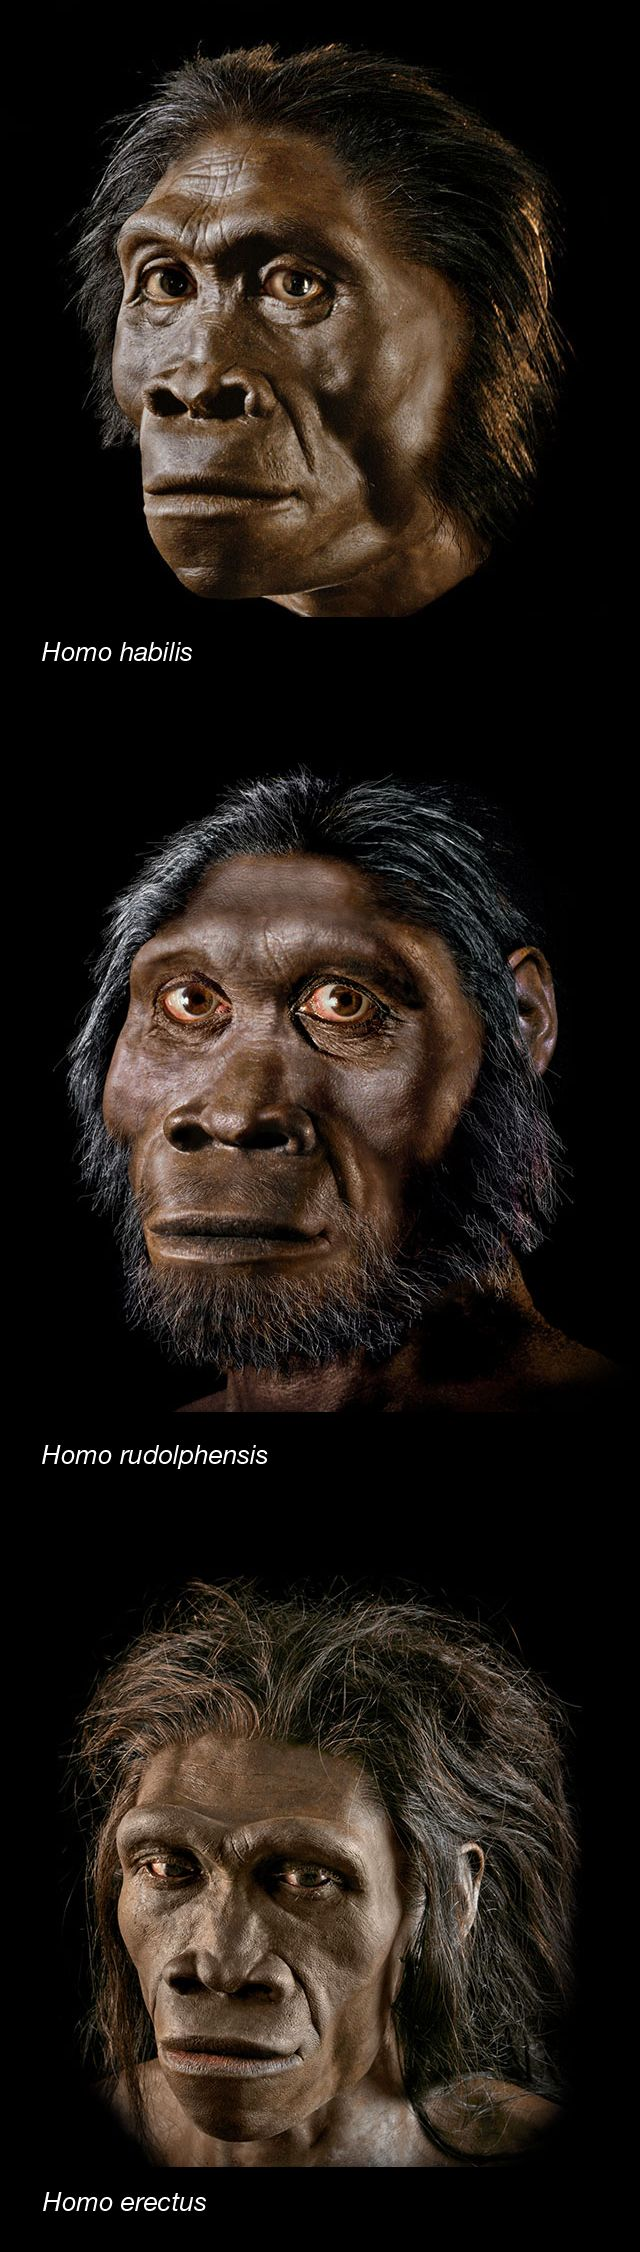 With all the buzz about Homo naledi, the newly discovered human ancestor, here's some background that will help put it in context.